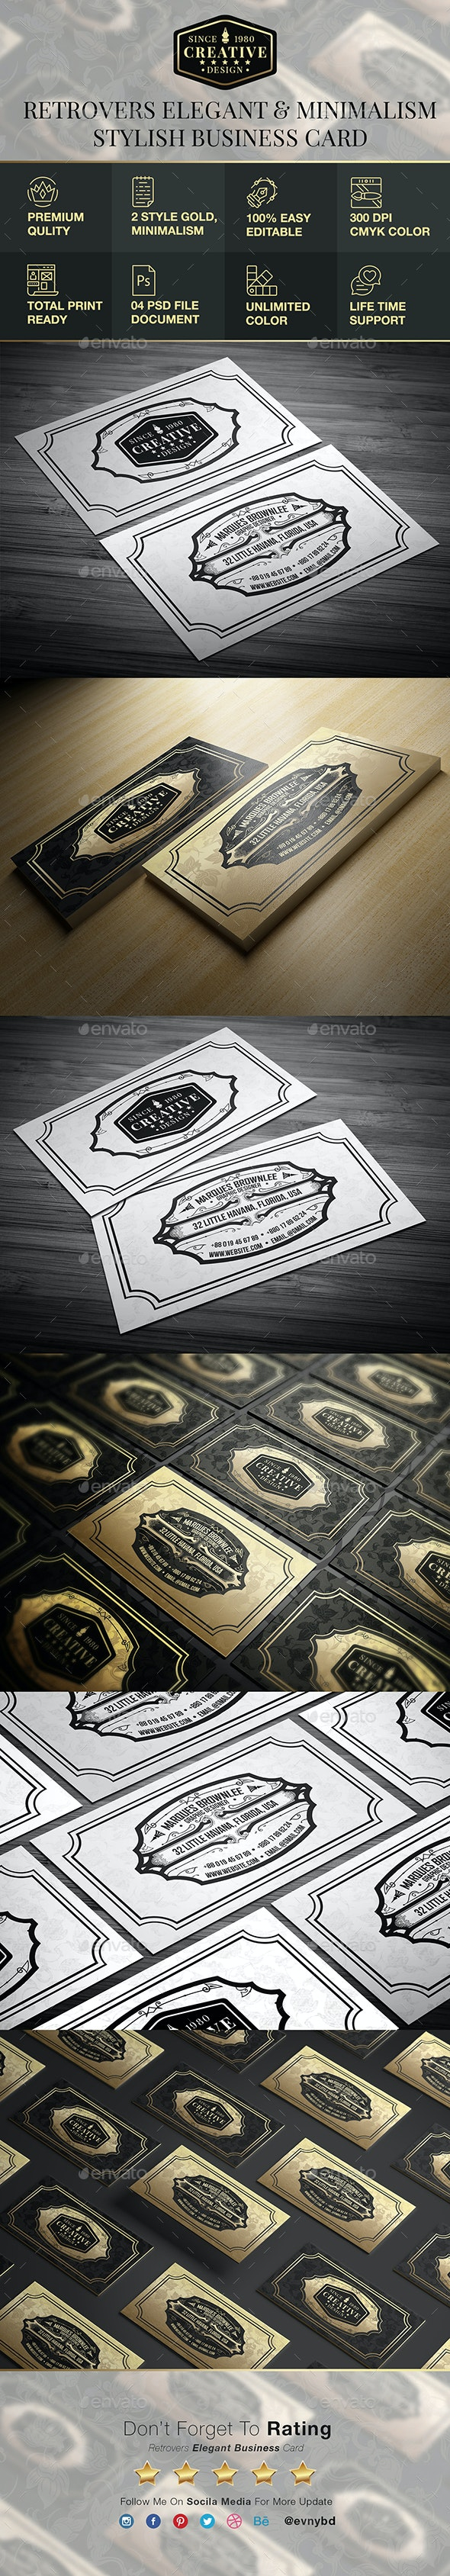 Retrovers Elegant Business Card - Corporate Business Cards